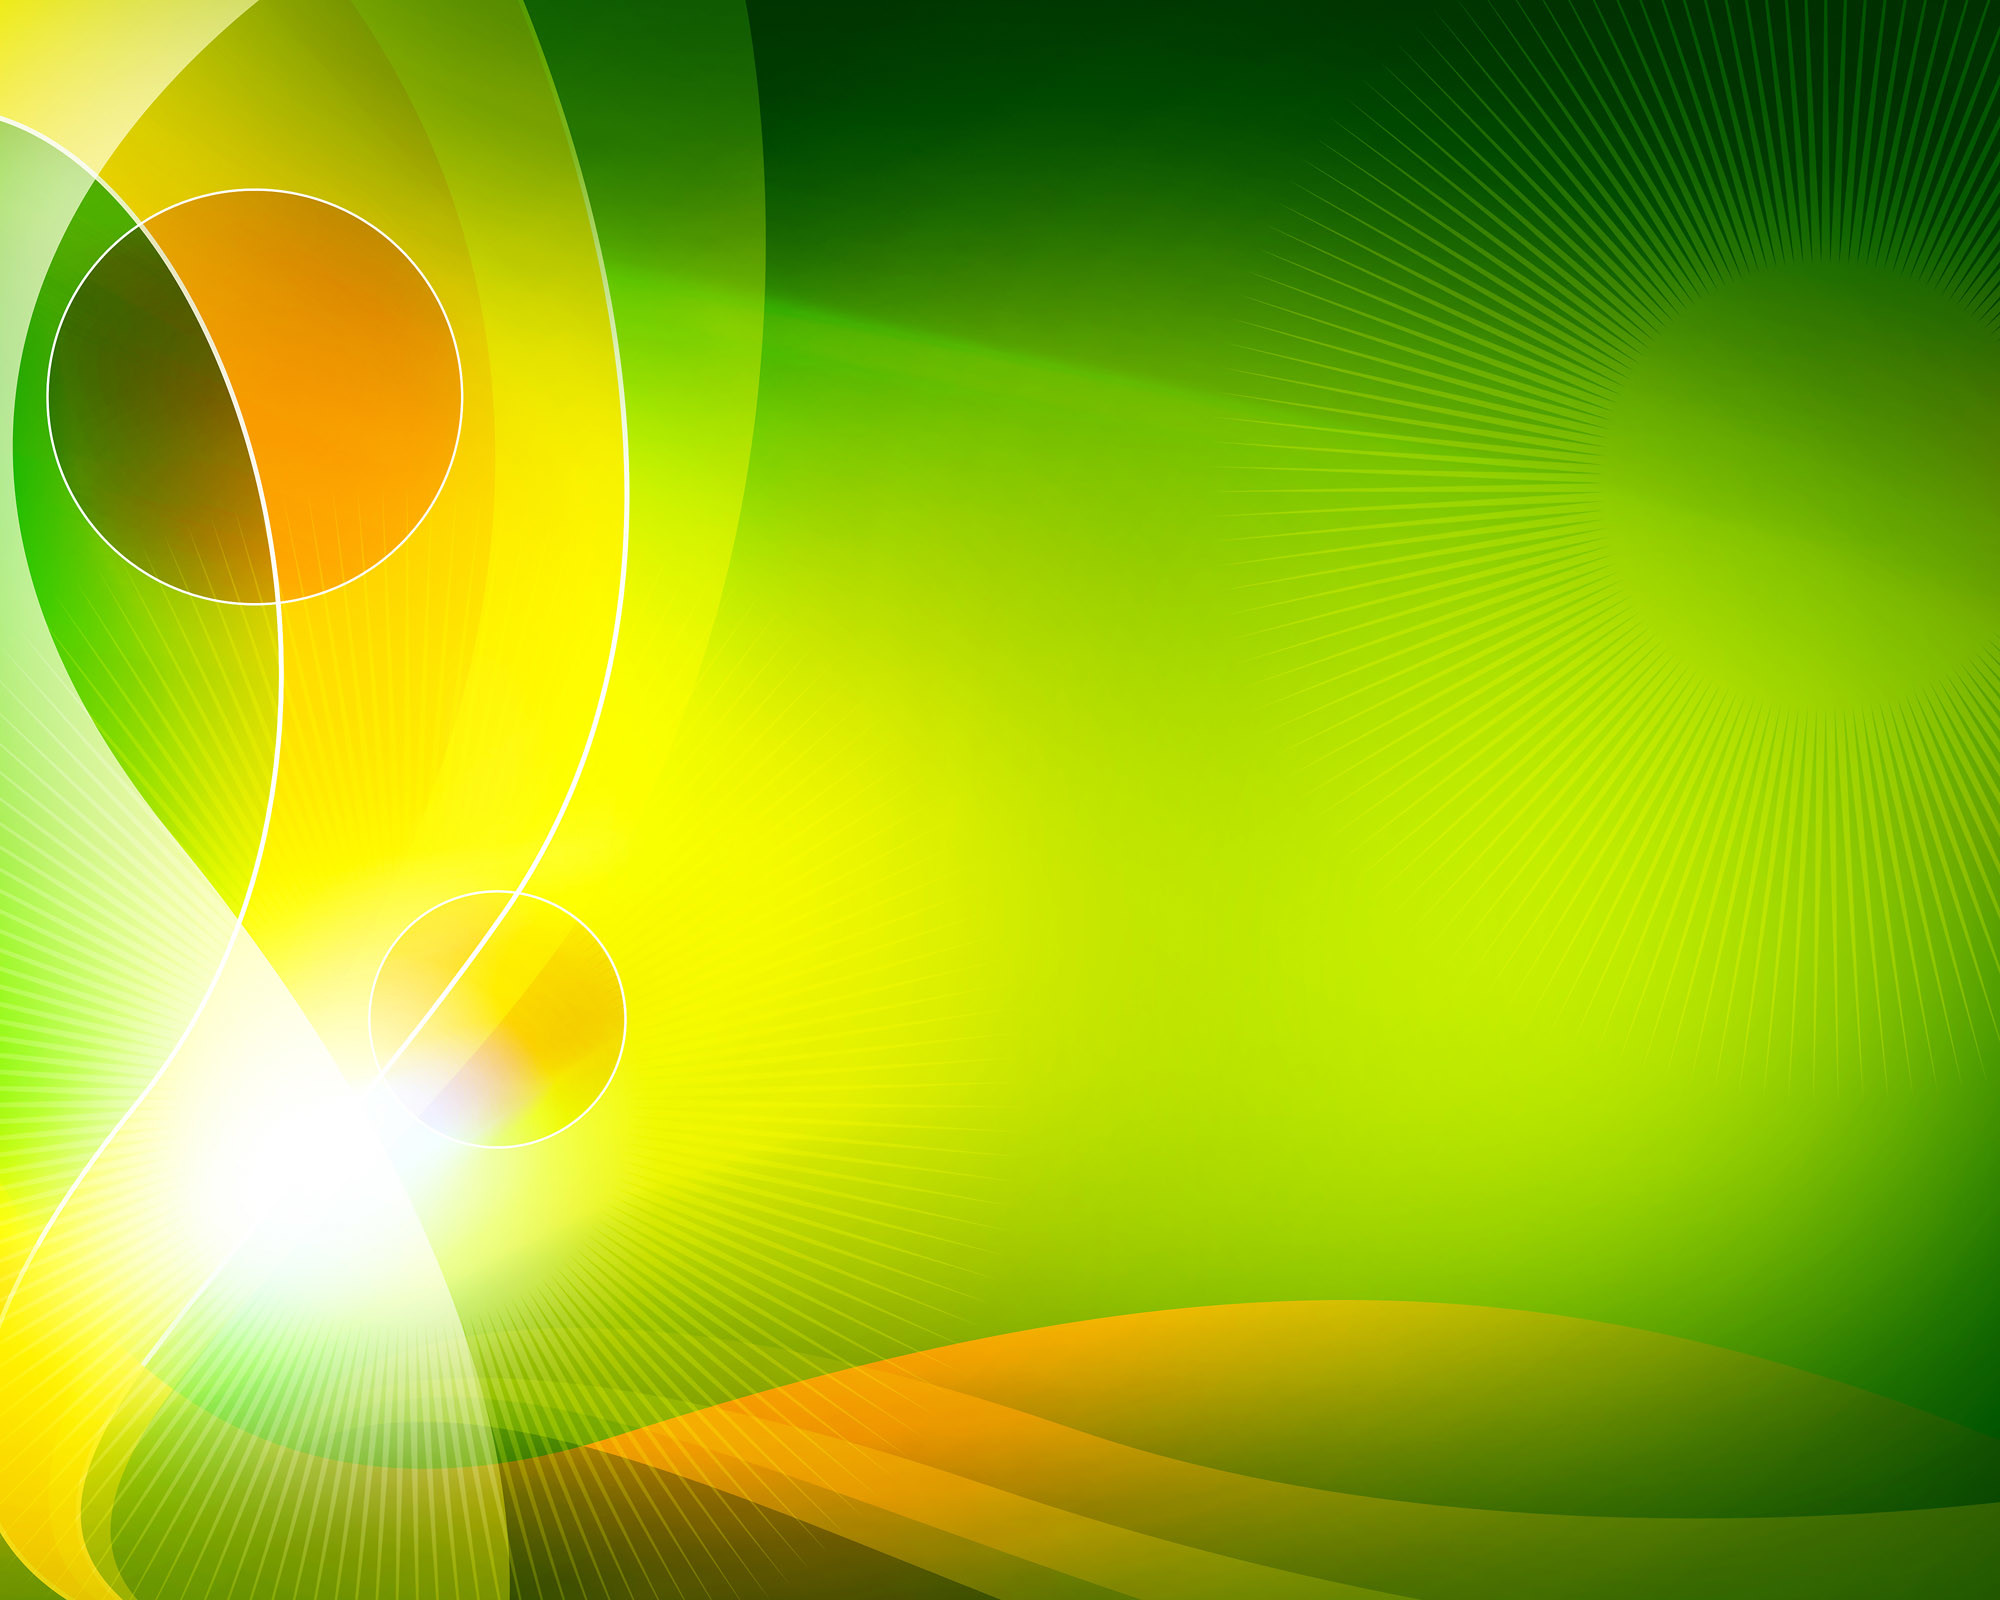 2000x1600 Best High Resolution Backgrounds Green